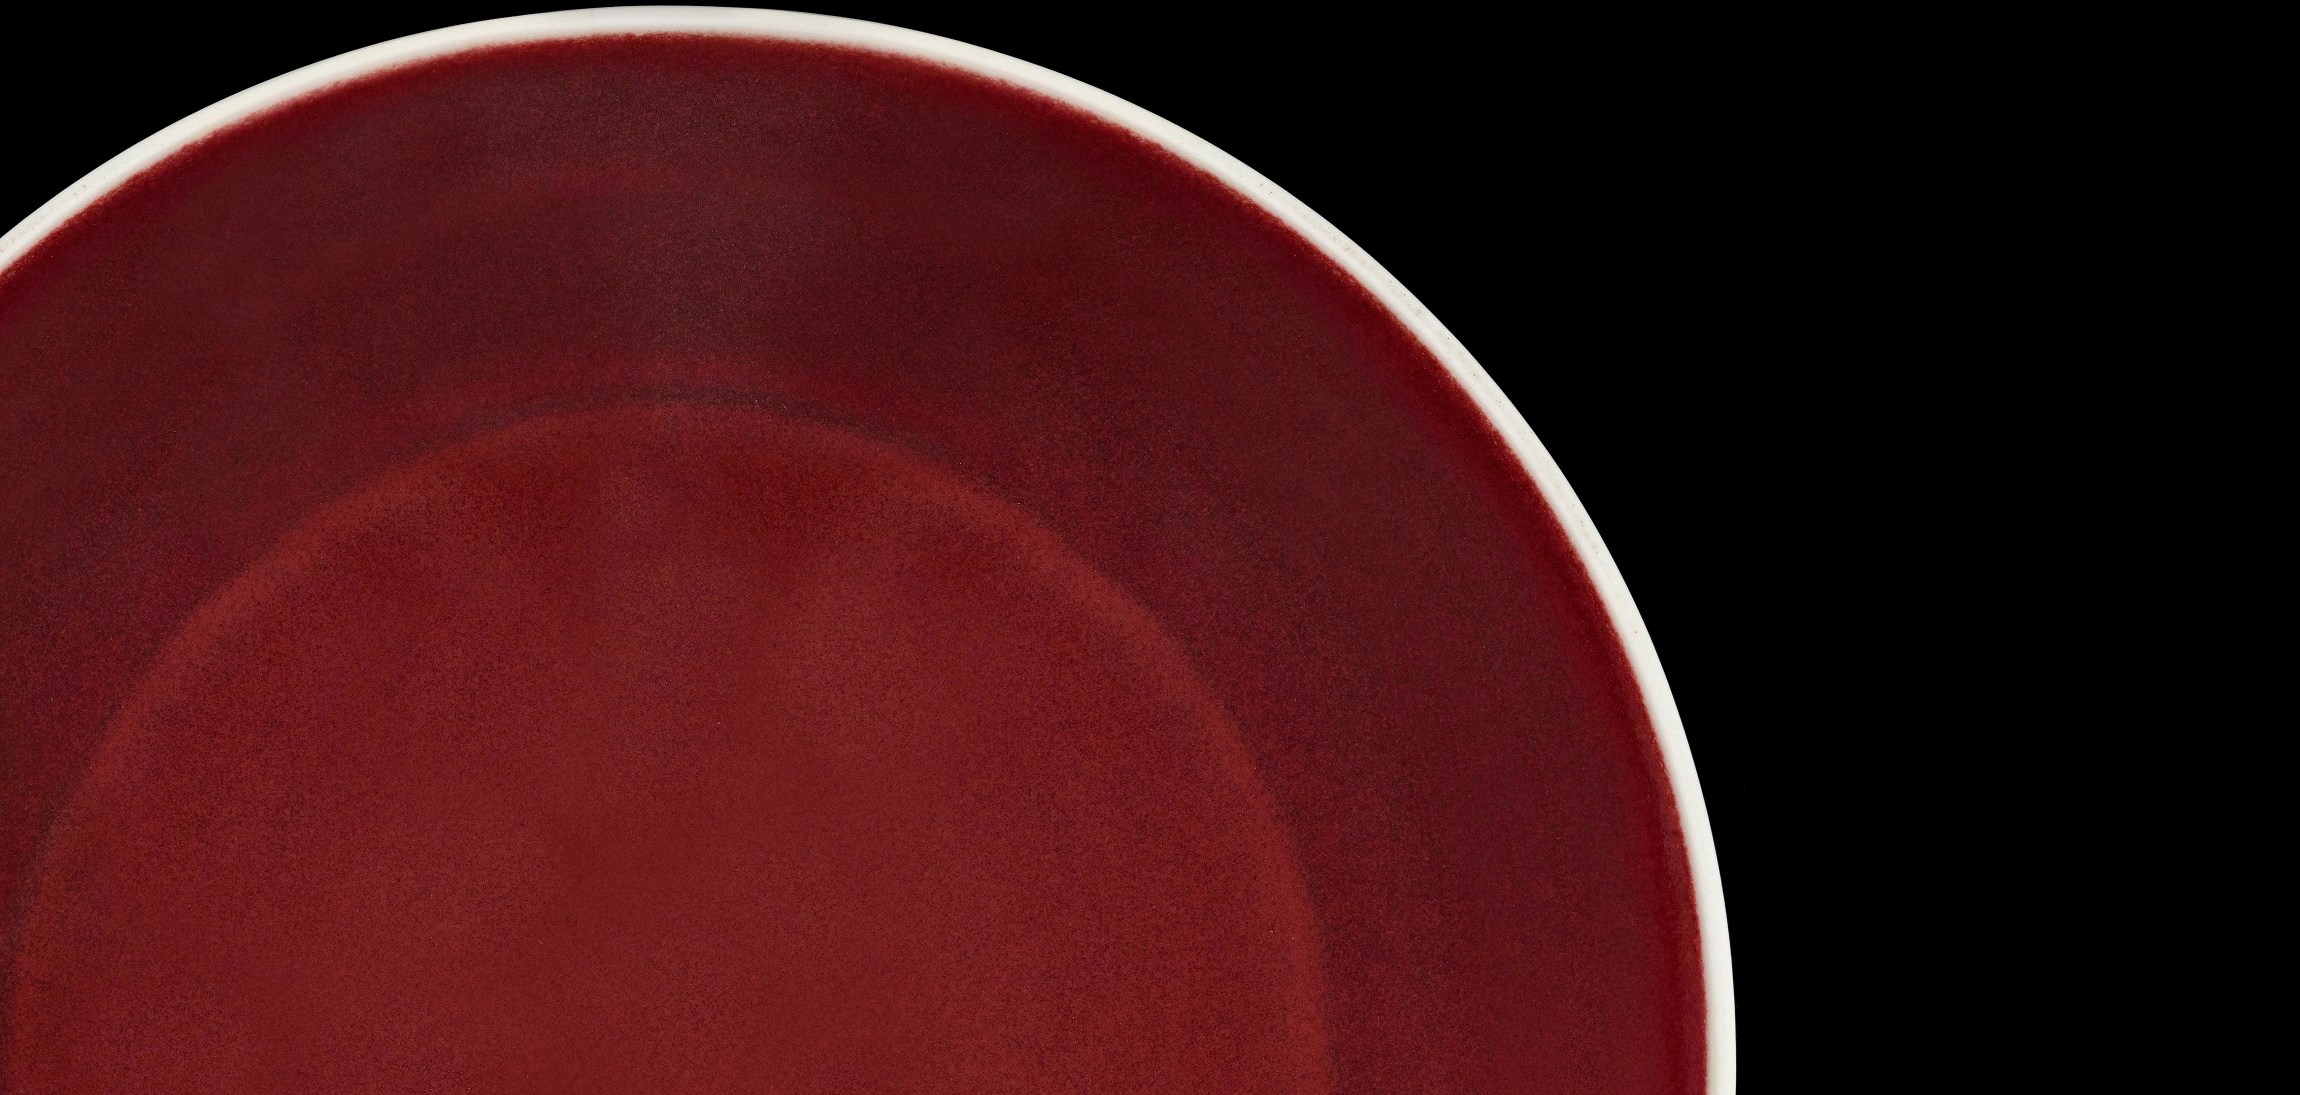 Scarlet bowl with white lip stands out against black background.